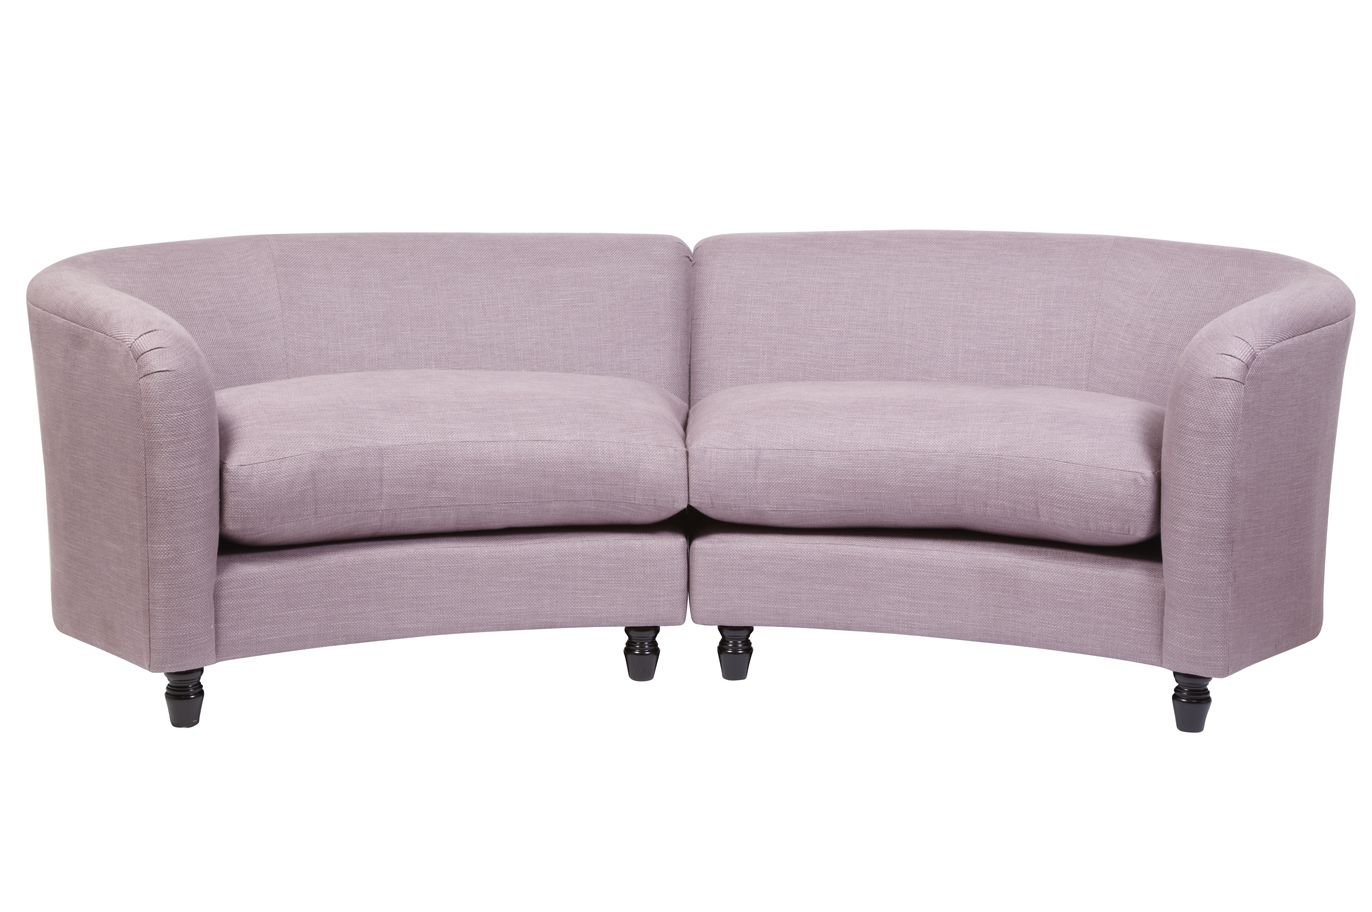 Large round curved sofa sectional astoria upholstered for Small settee